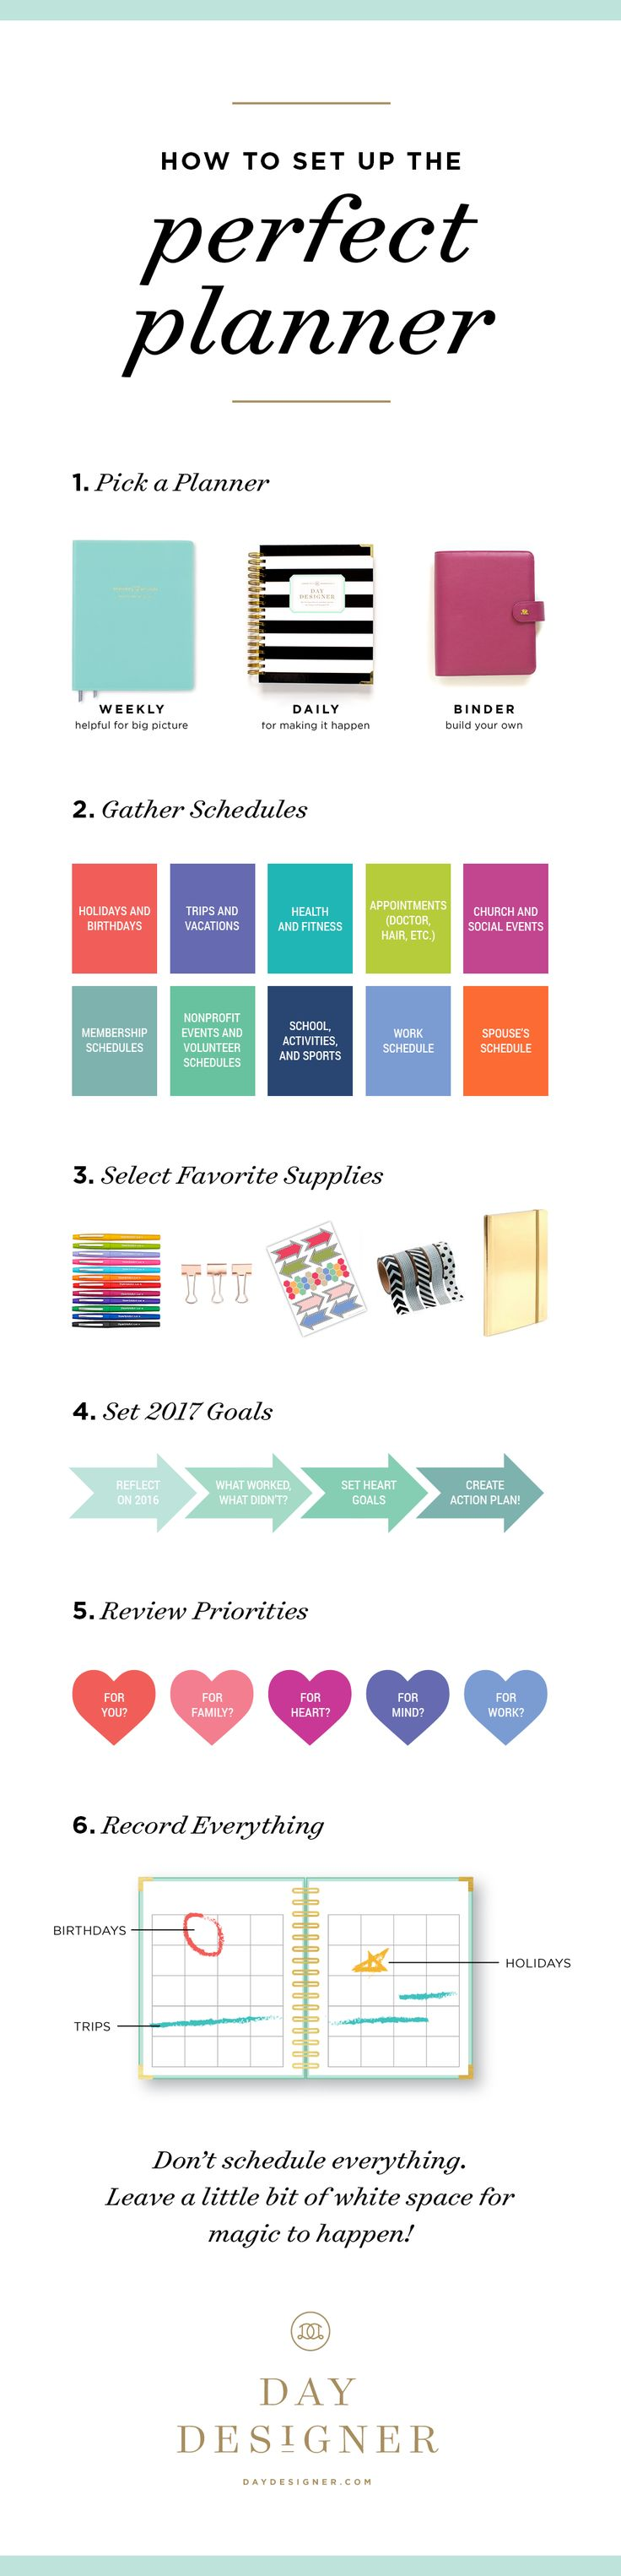 How to set up the perfect 2017 planner! Choose weekly, daily, or a binder format. Gather schedules and select your favorite supplies. Set goals, review priorities, and record everything – but don't schedule everything! Leave a little bit of white space for magic to happen. - Day Designer